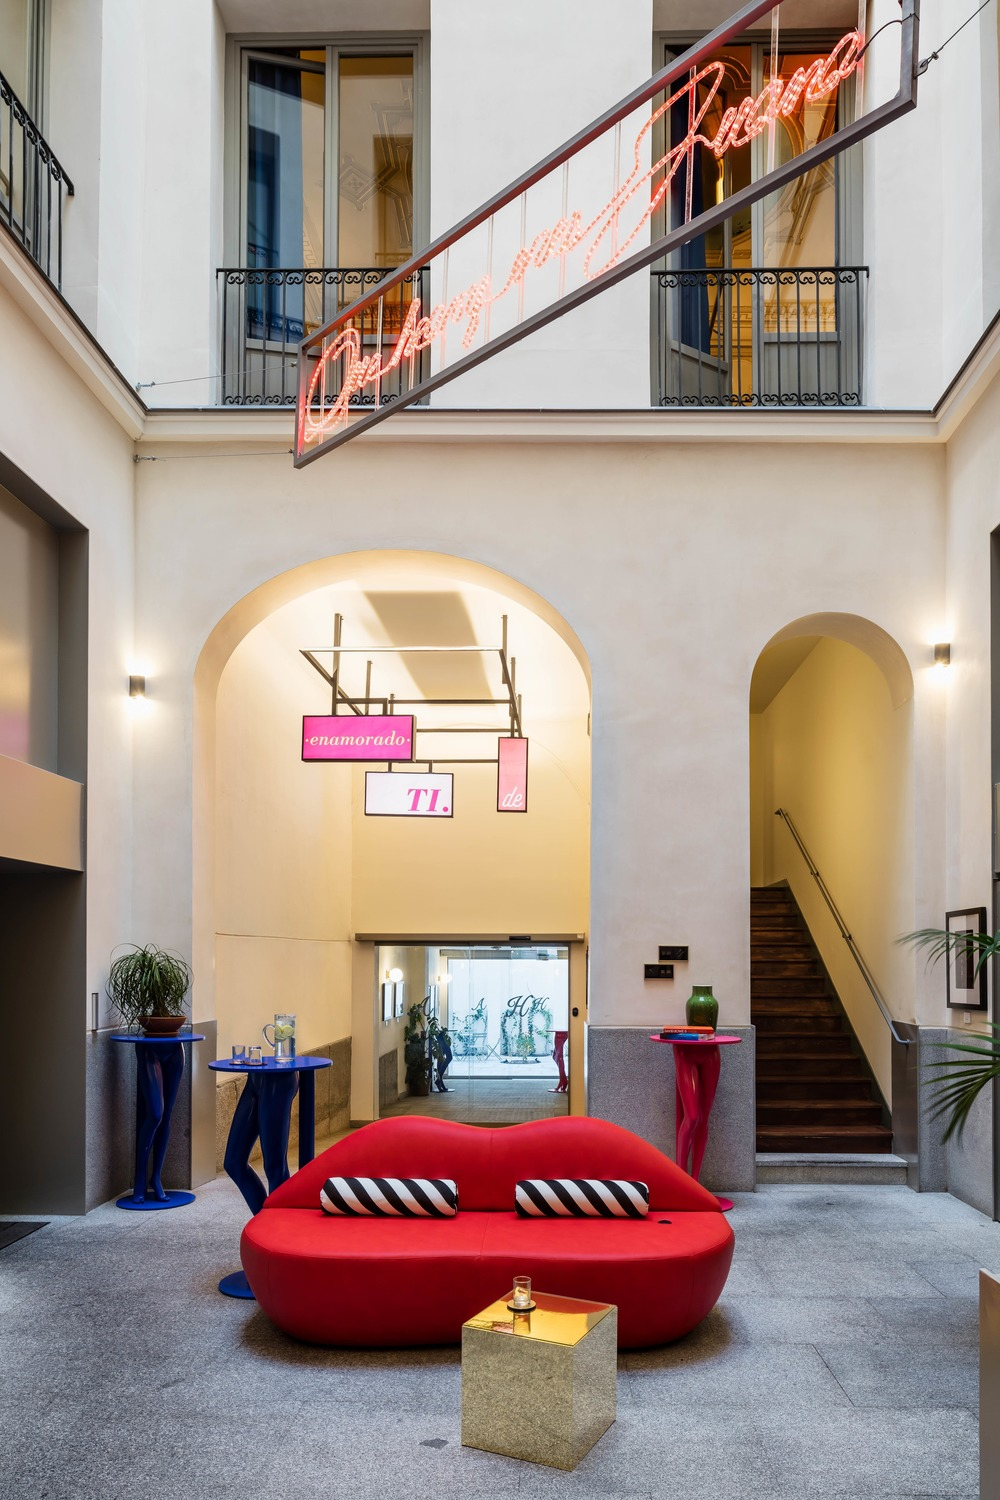 The Axel Hotel Madrid Achieves Character Through Color